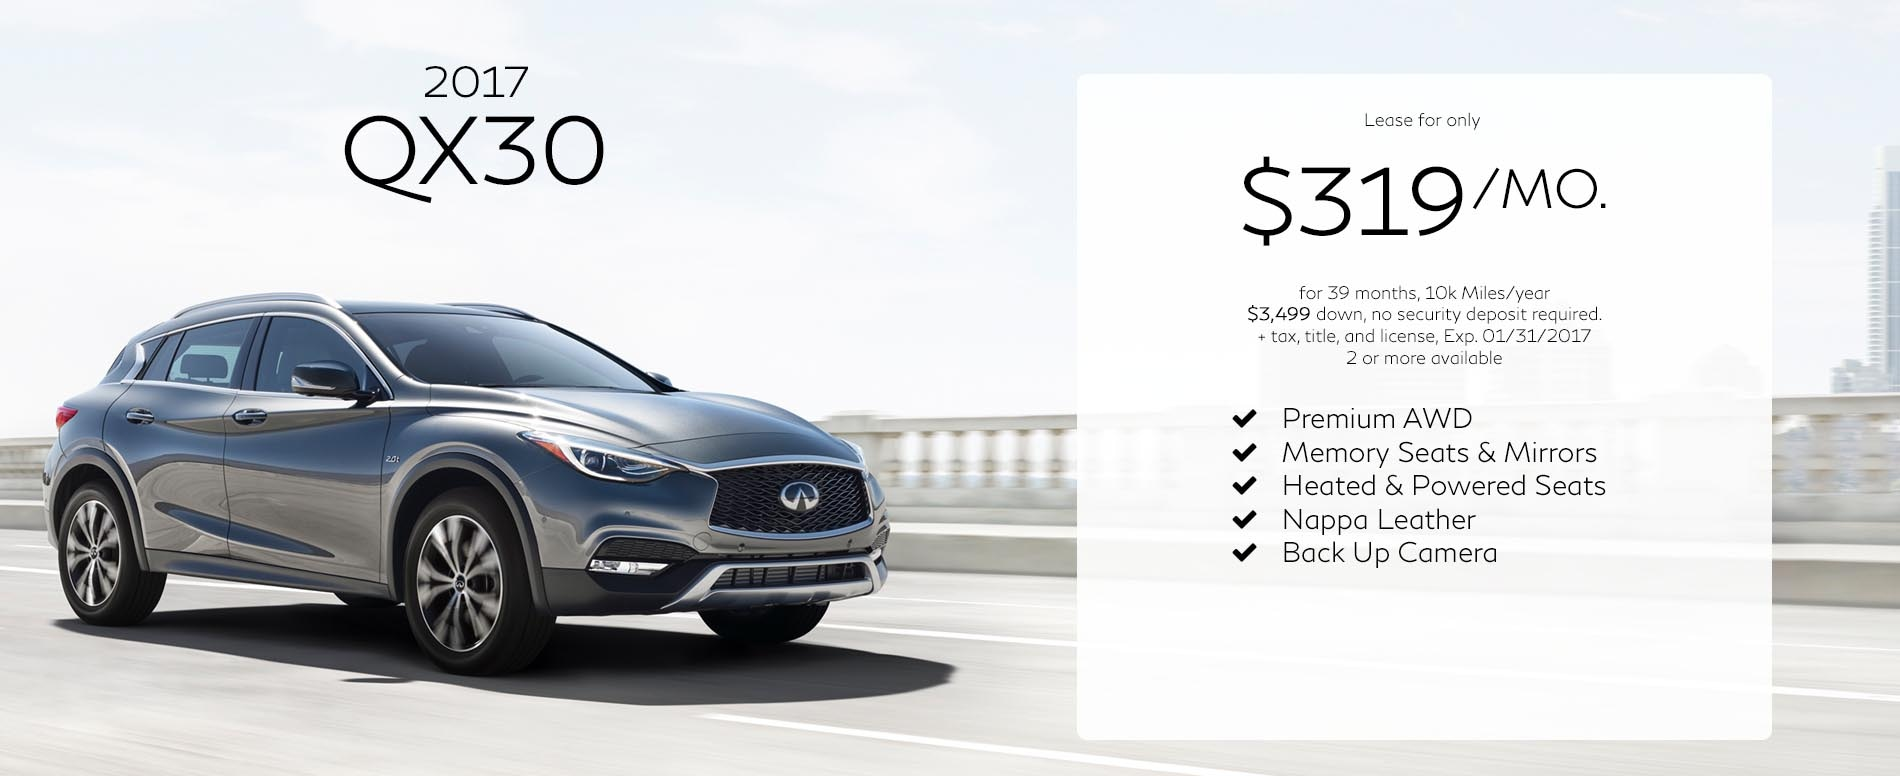 Lease a 2017 Infiniti QX30 for $319 per month with $3,499 due at signing